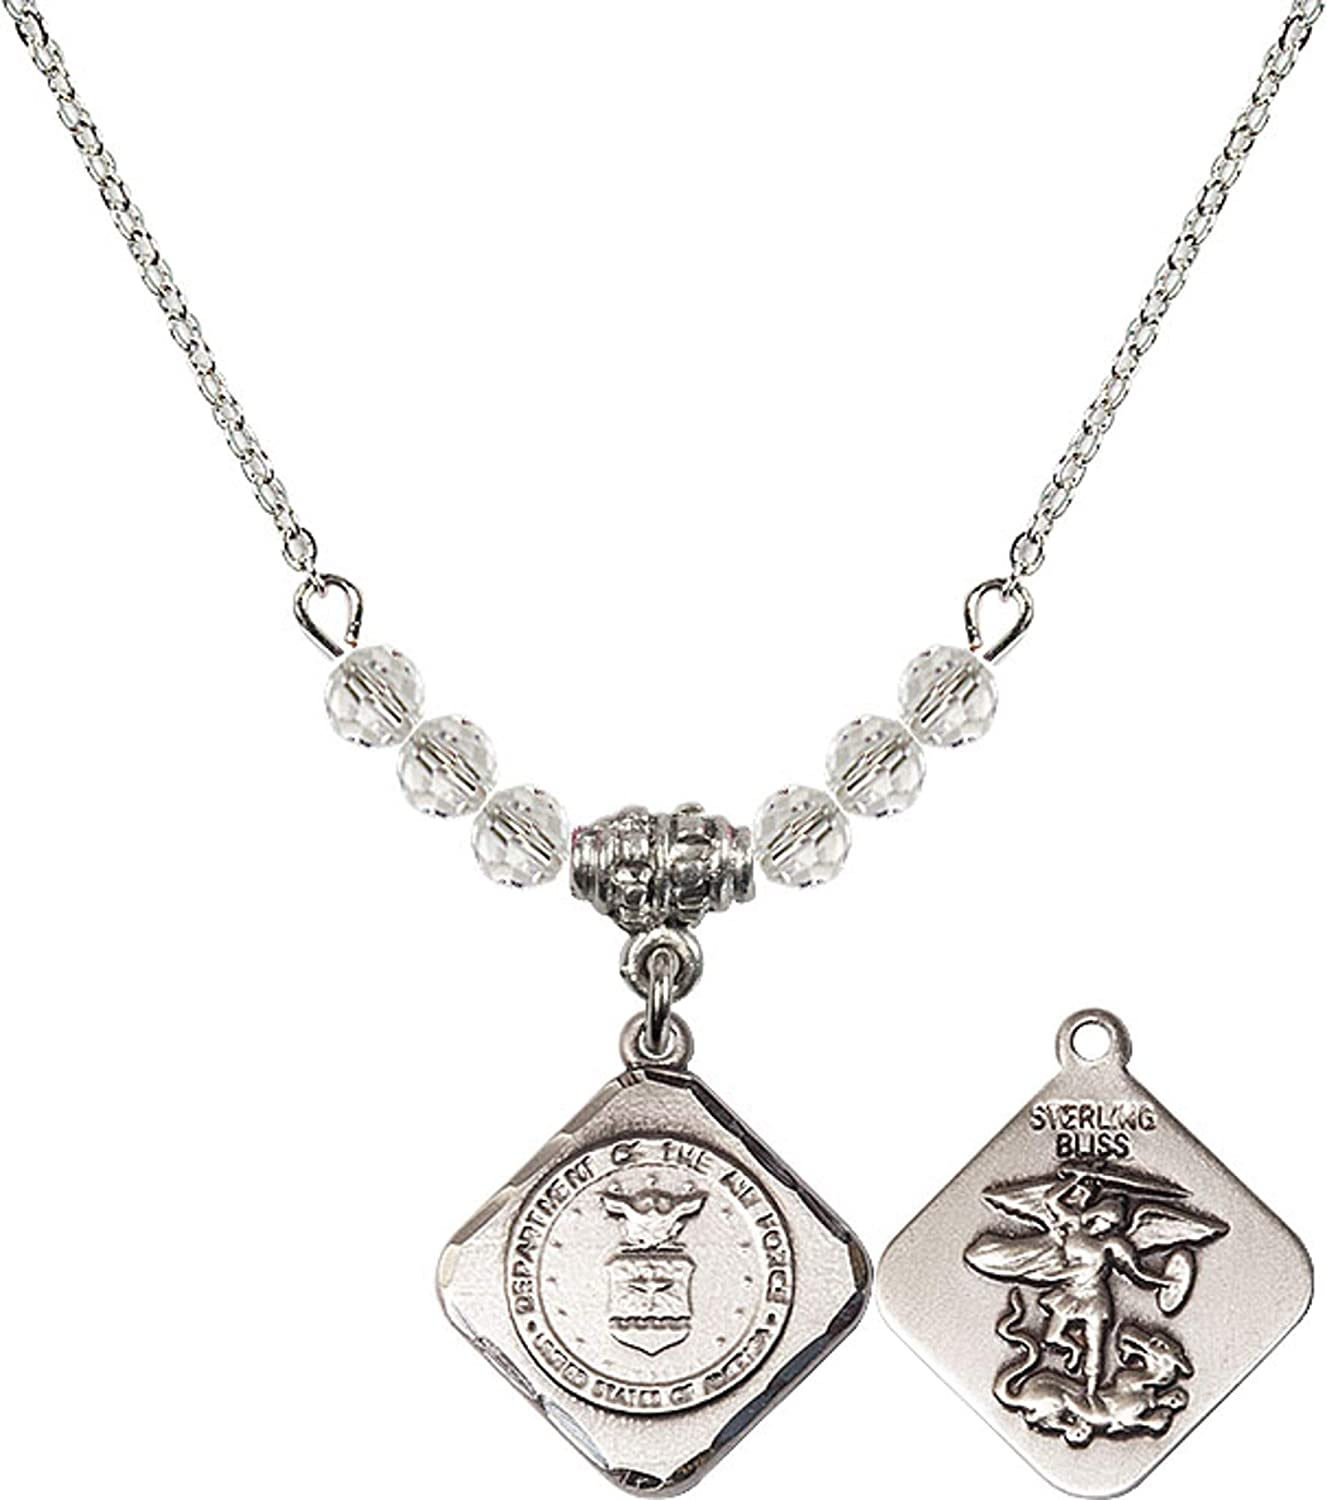 Bonyak Jewelry 18 Inch Rhodium Plated Necklace w// 4mm White April Birth Month Stone Beads and Air Force Diamond Charm